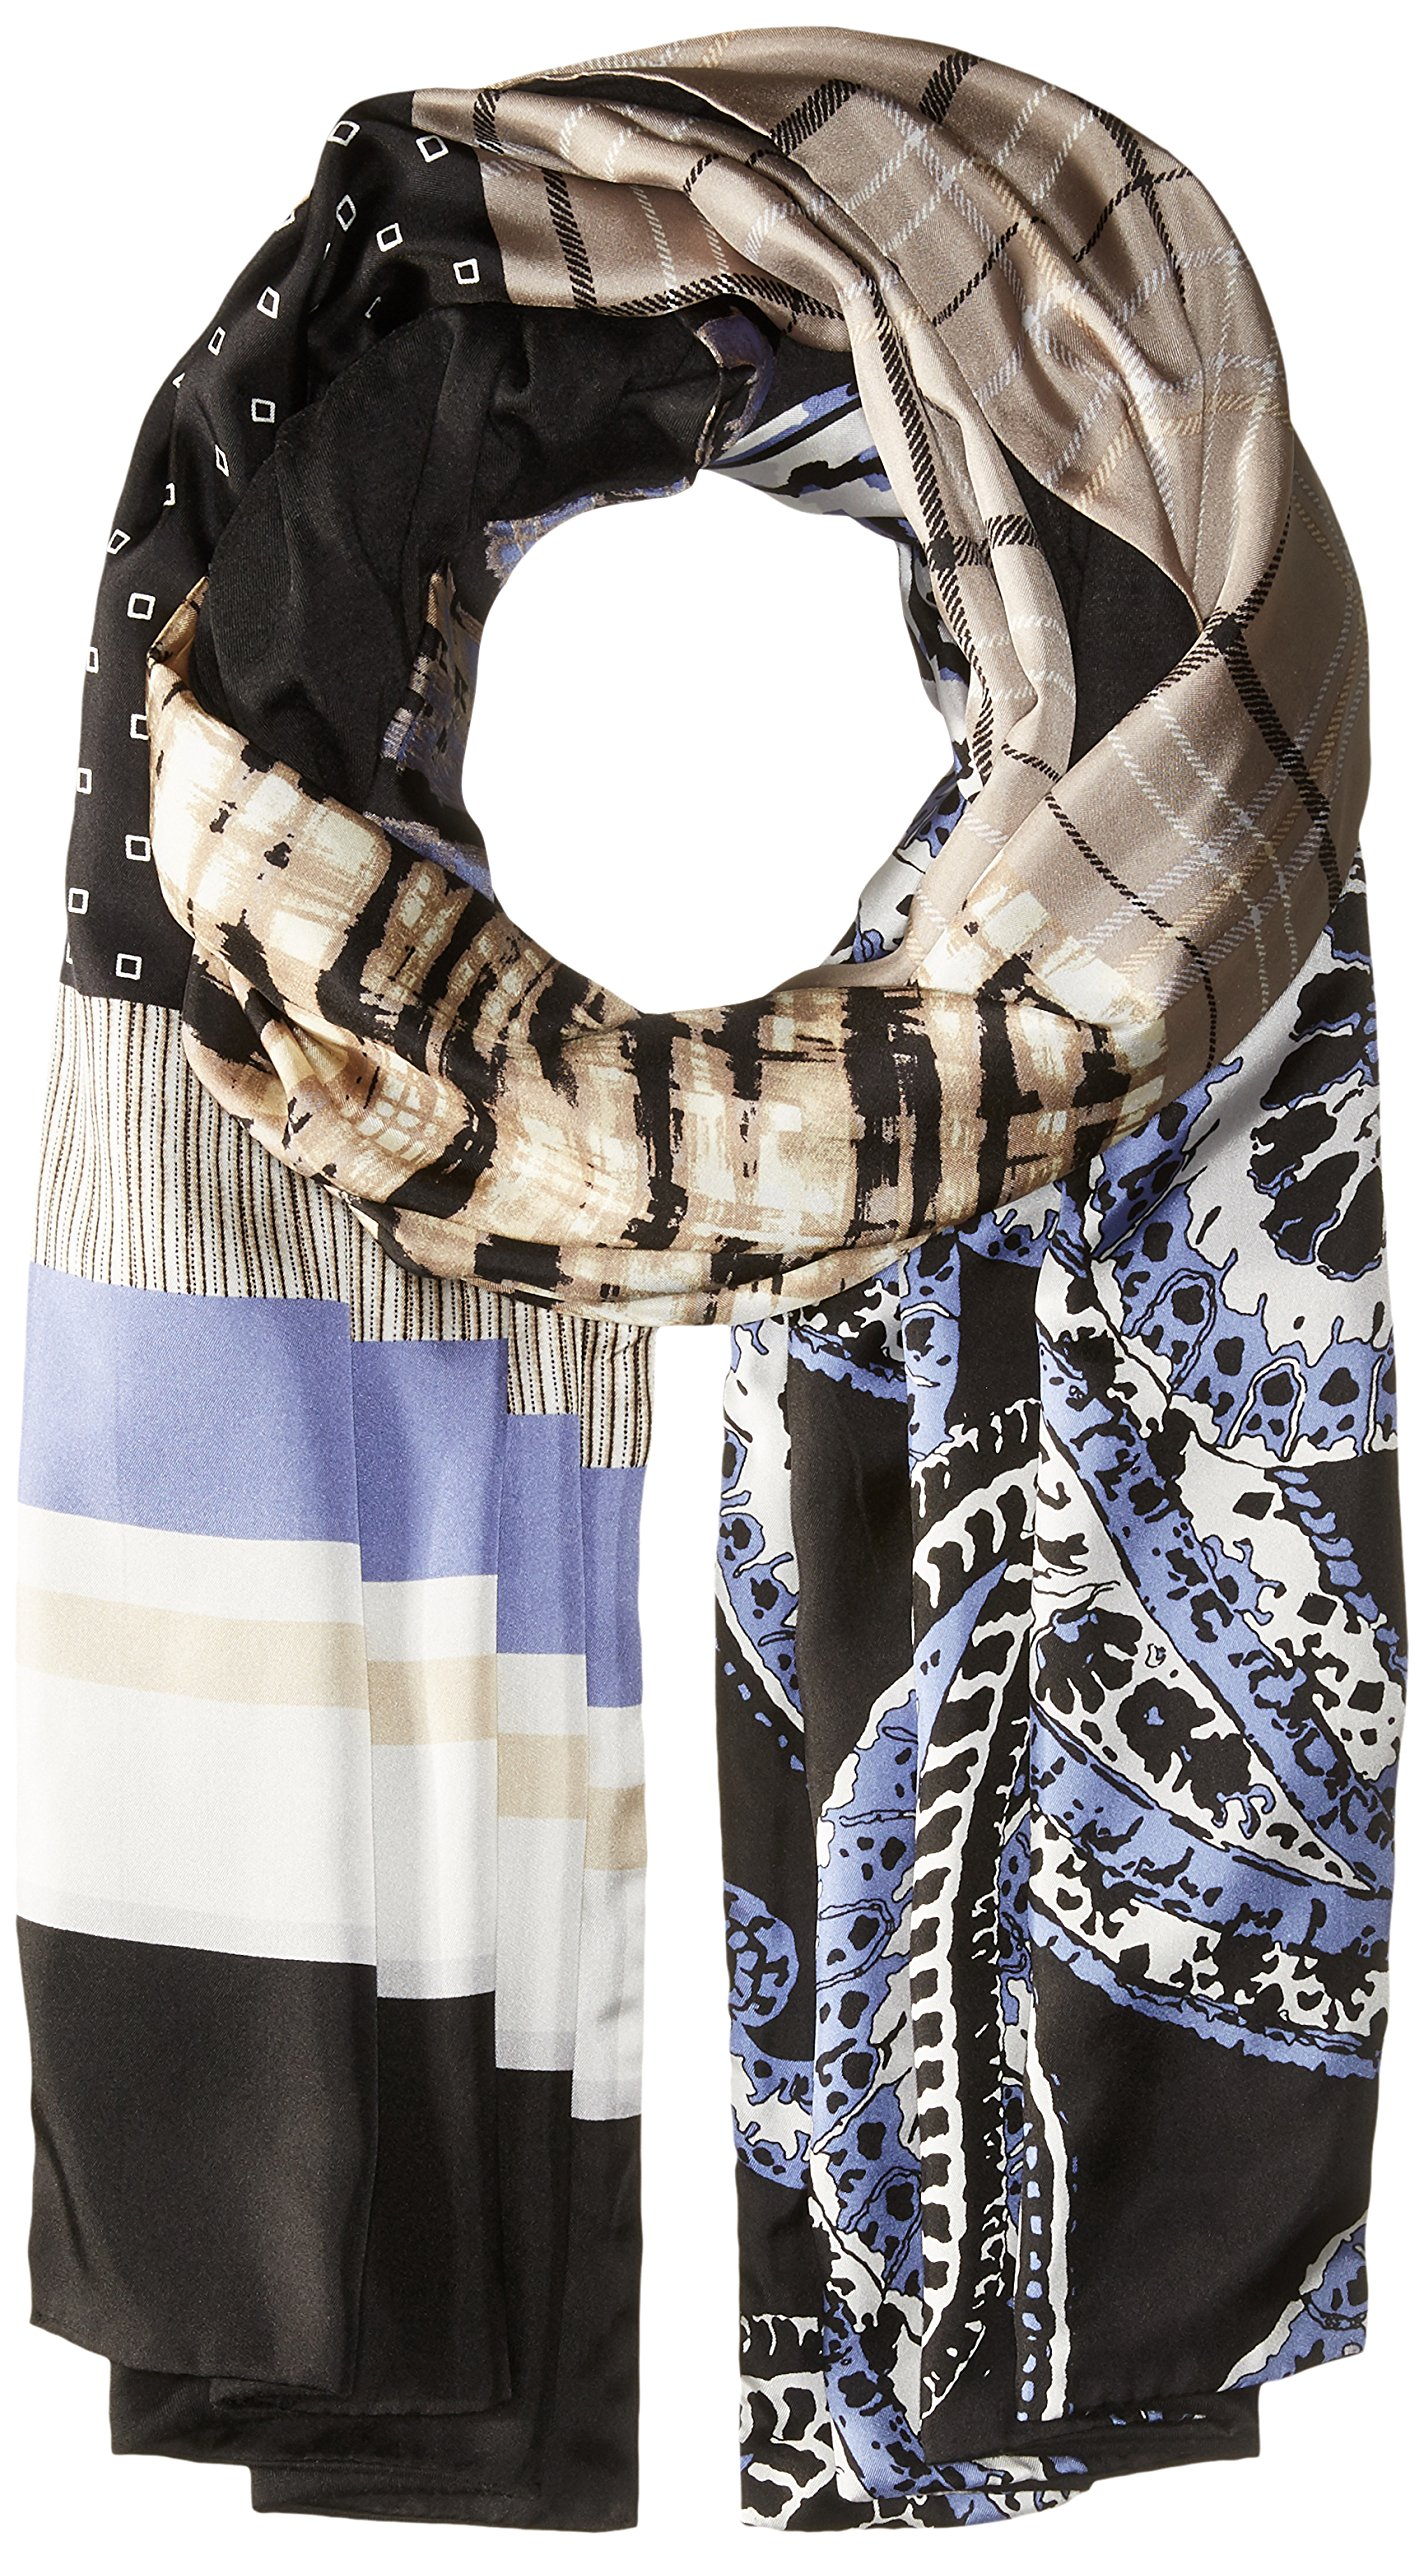 Bcbgmaxazria Women's Patchwork Wrap, Black, One Size by BCBGMAXAZRIA